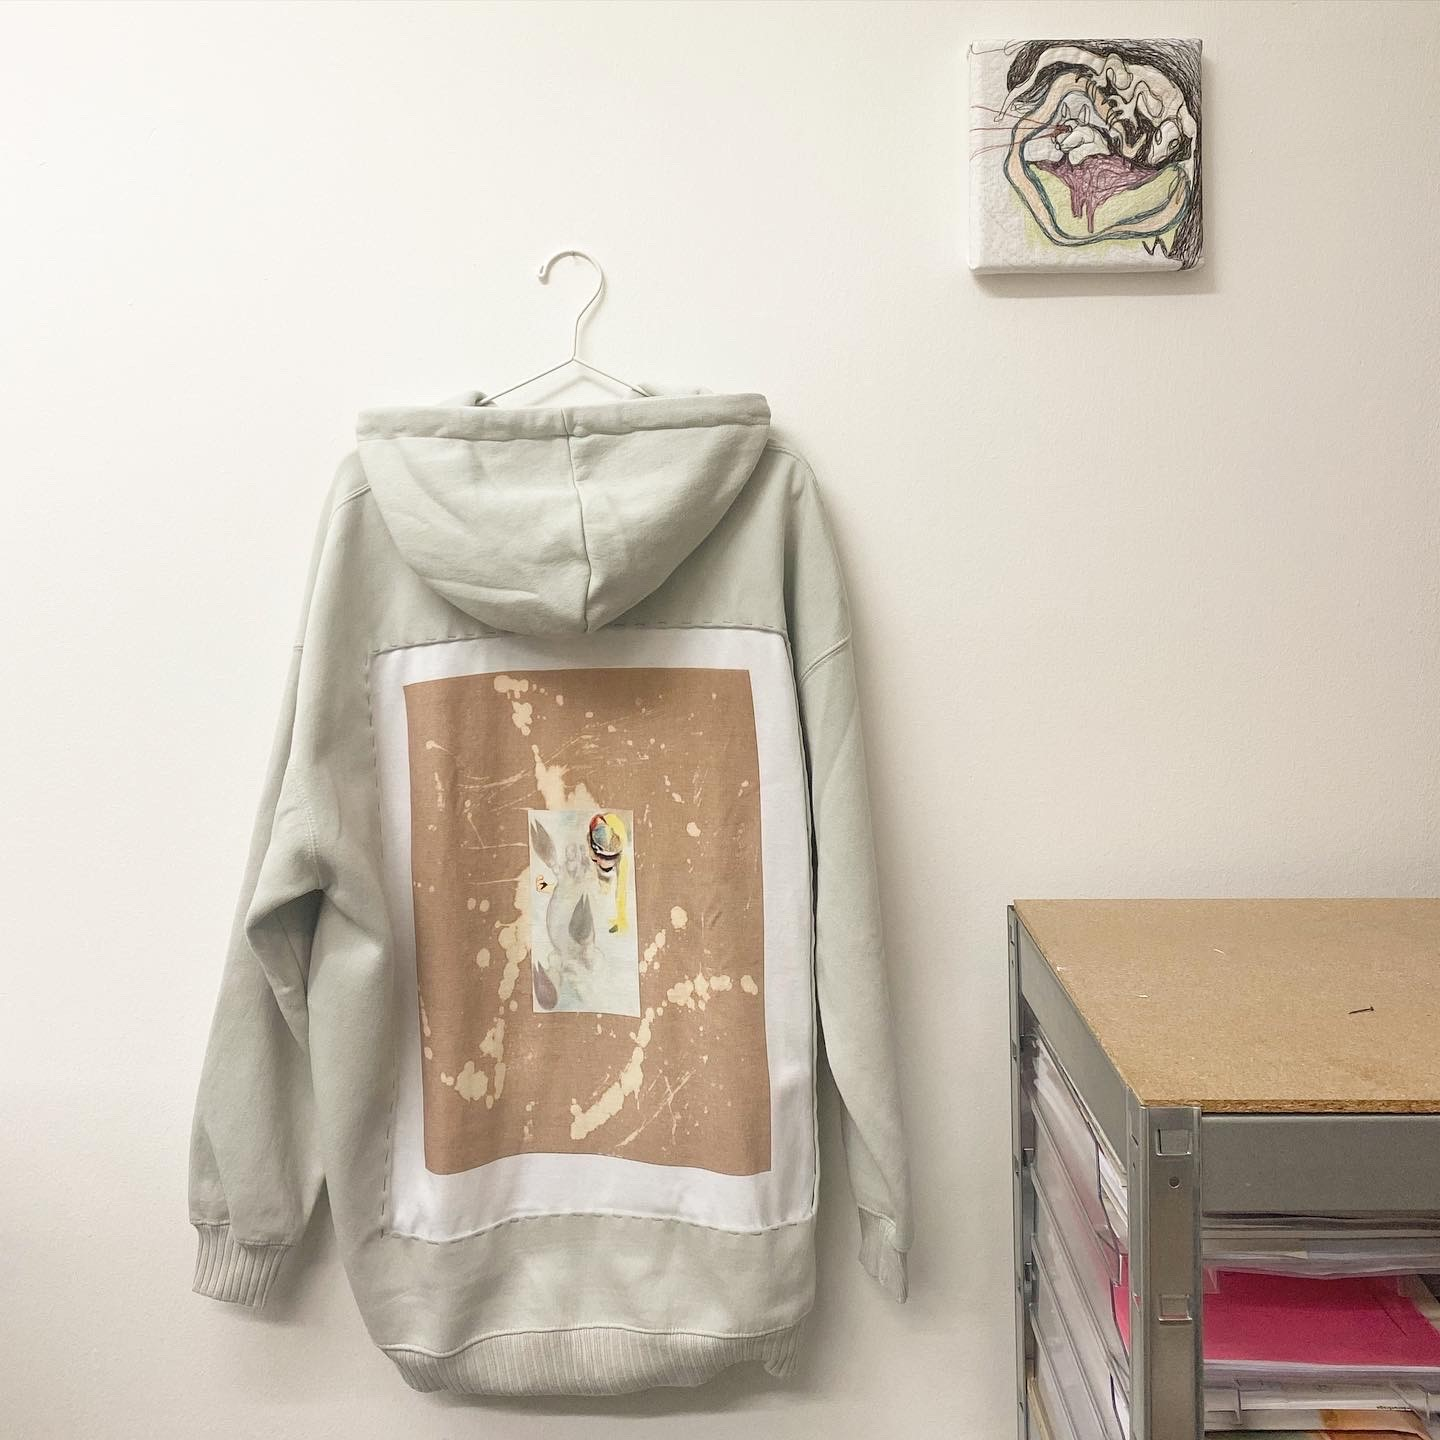 AddLabel: Twin Hoodies – Is D&G the same as Dolce & Gabbana? / Alison Yip